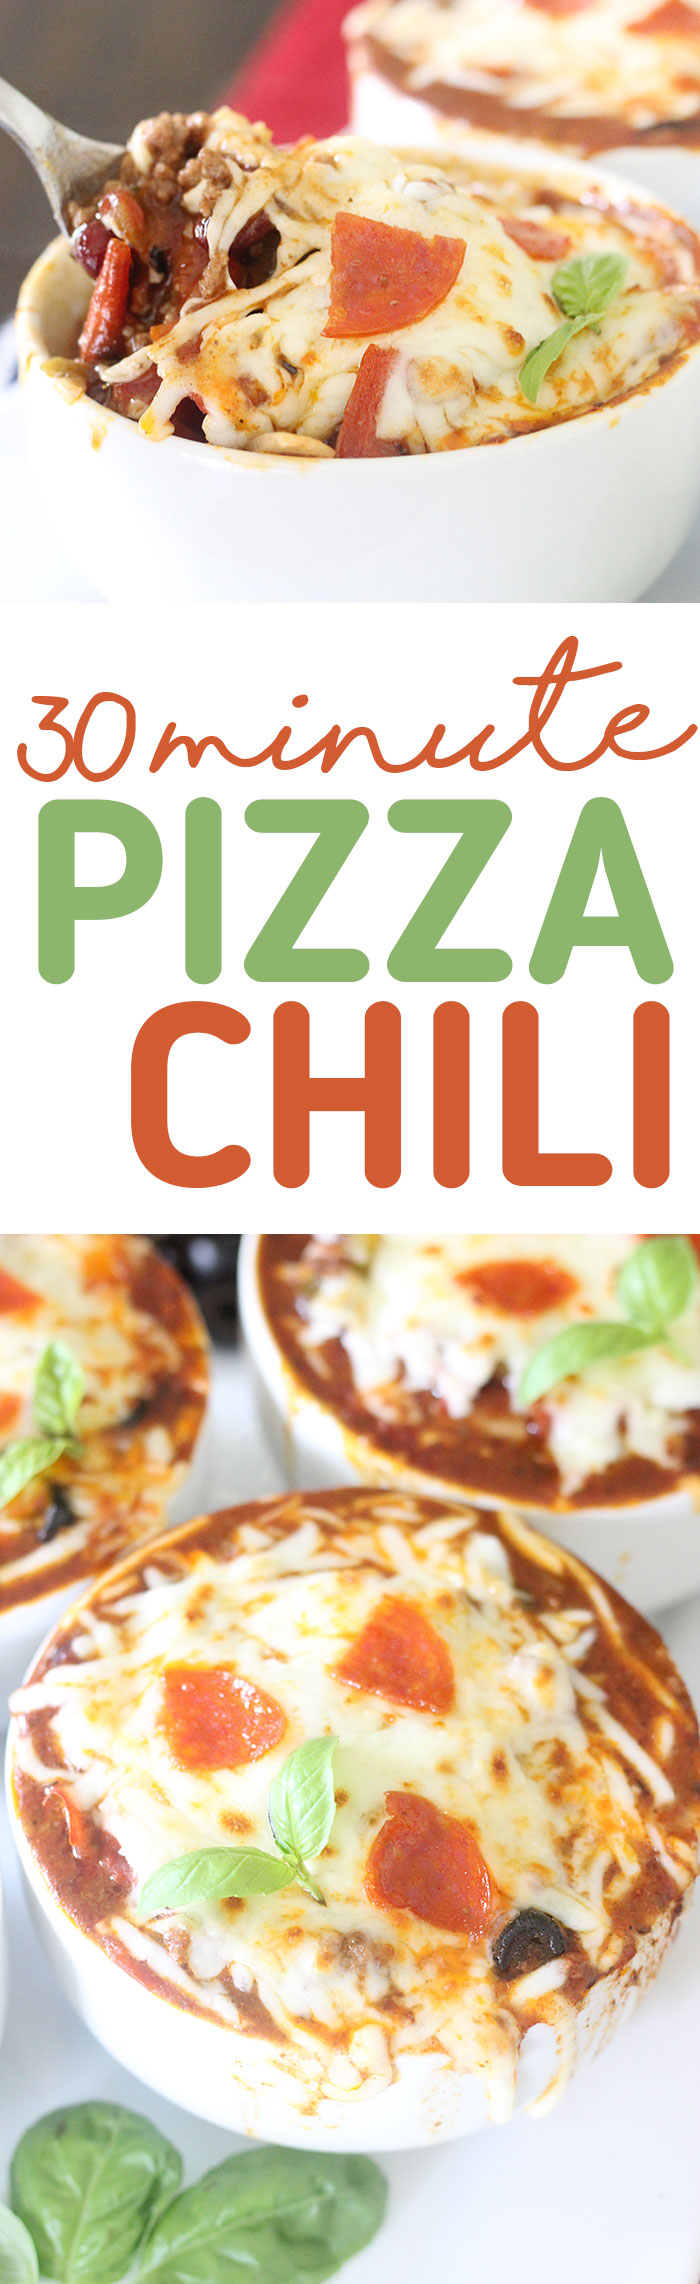 Pizza Chili that can be made in just 30 minutes. Make any night more awesome with this EASY recipe.